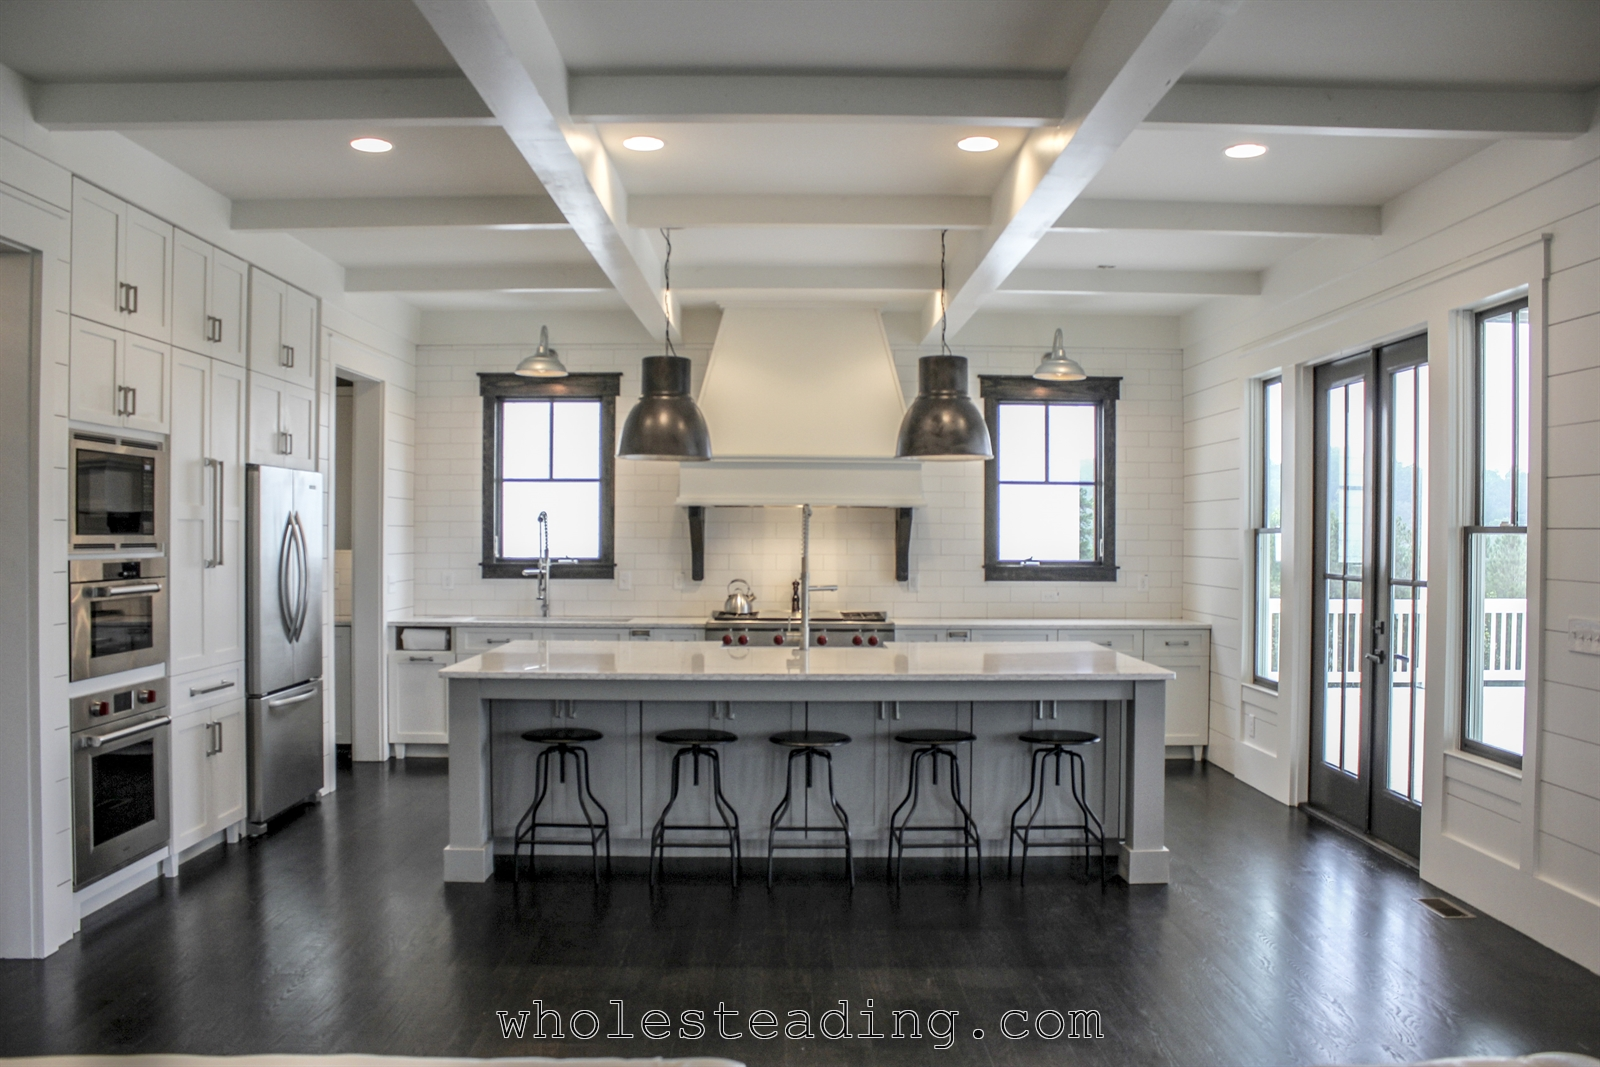 Farmhouse Dream Kitchen Wholesteading Com